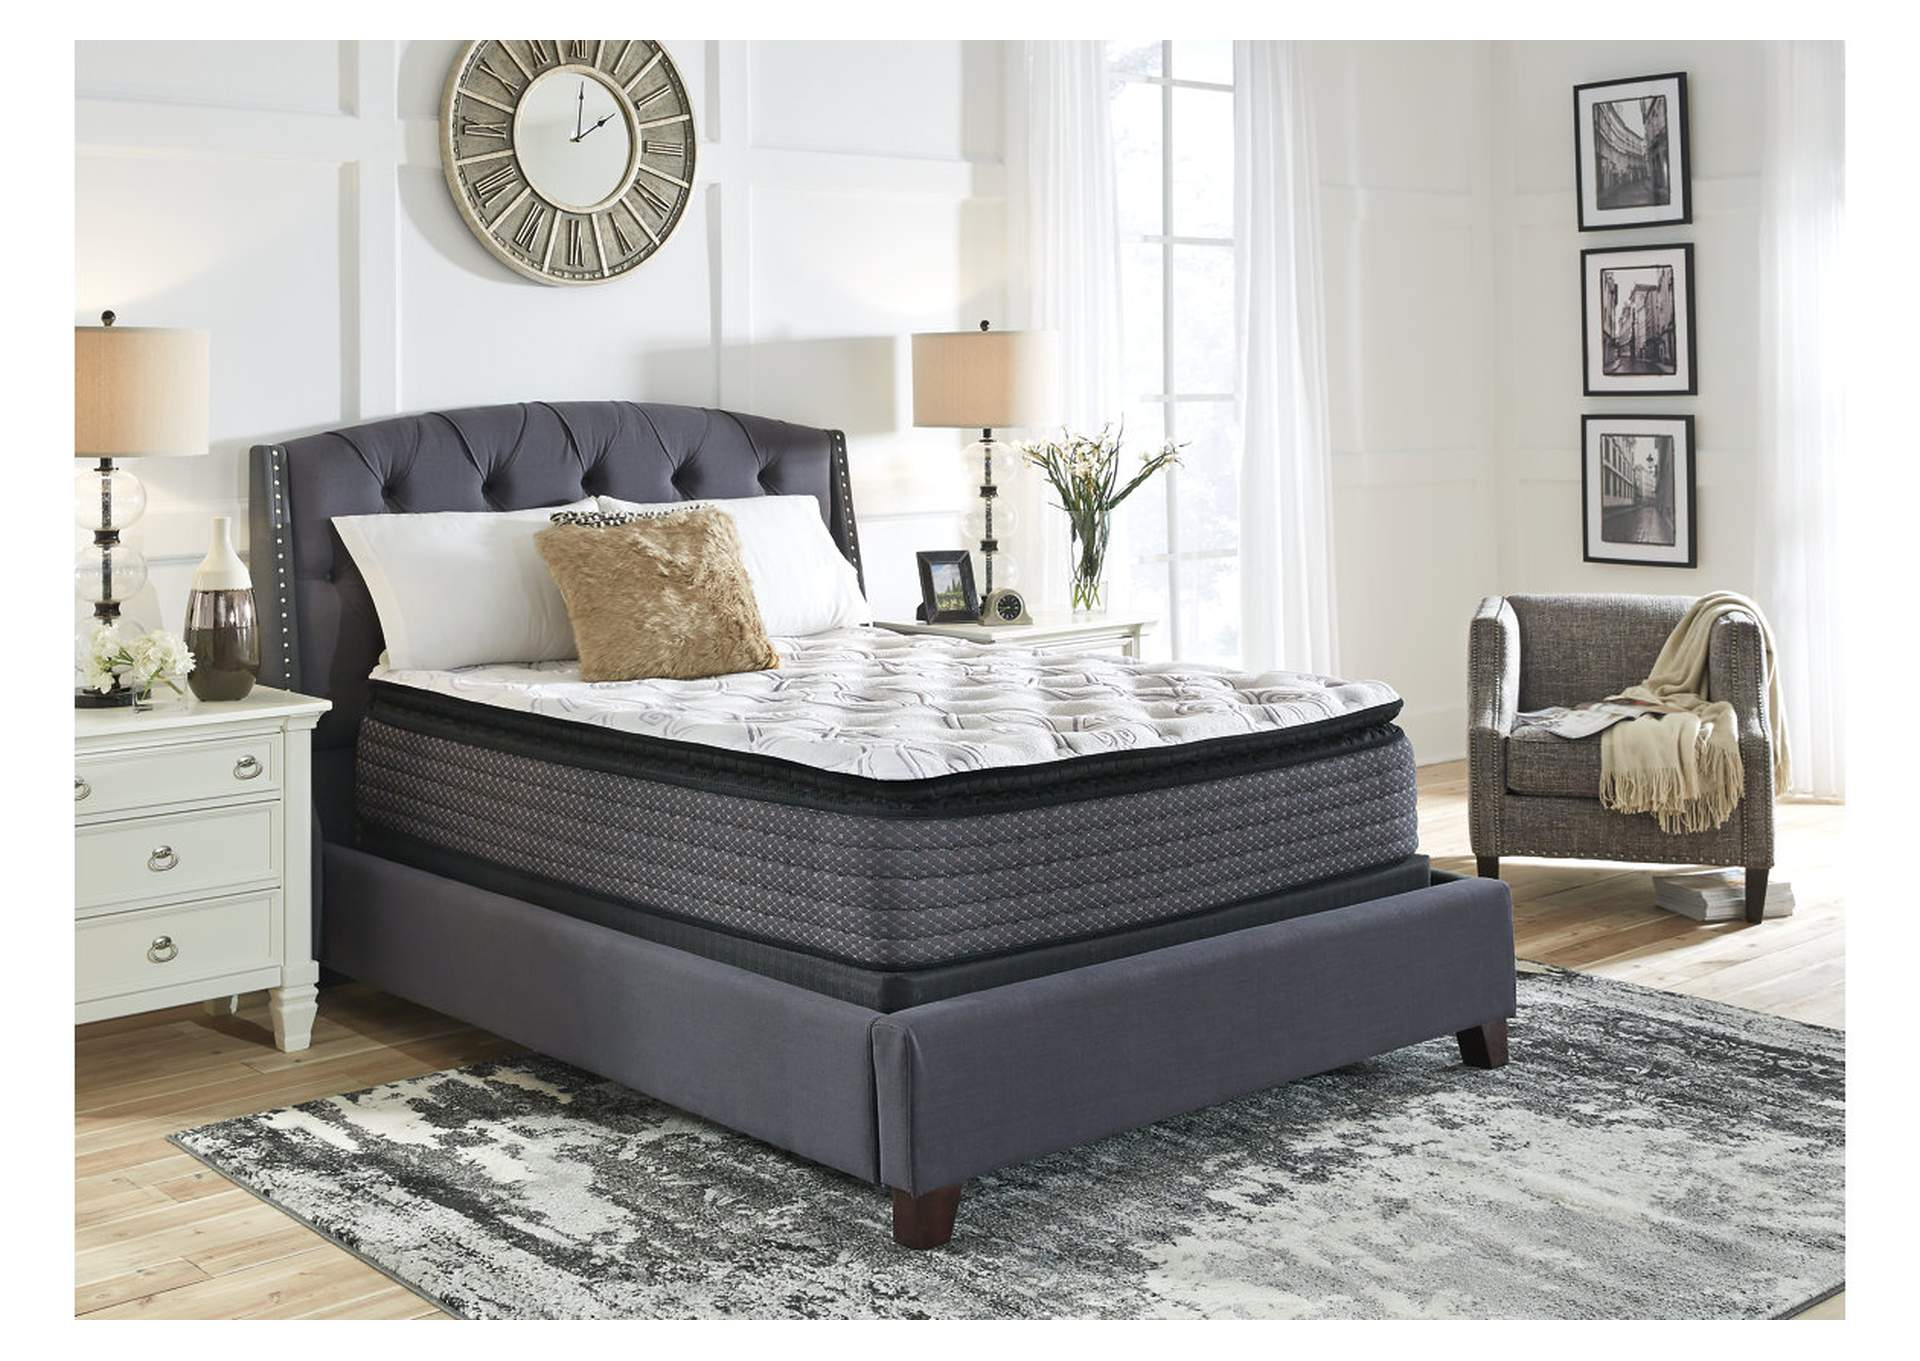 Limited Edition Pillowtop King Mattress w/Foundation,Sierra Sleep by Ashley